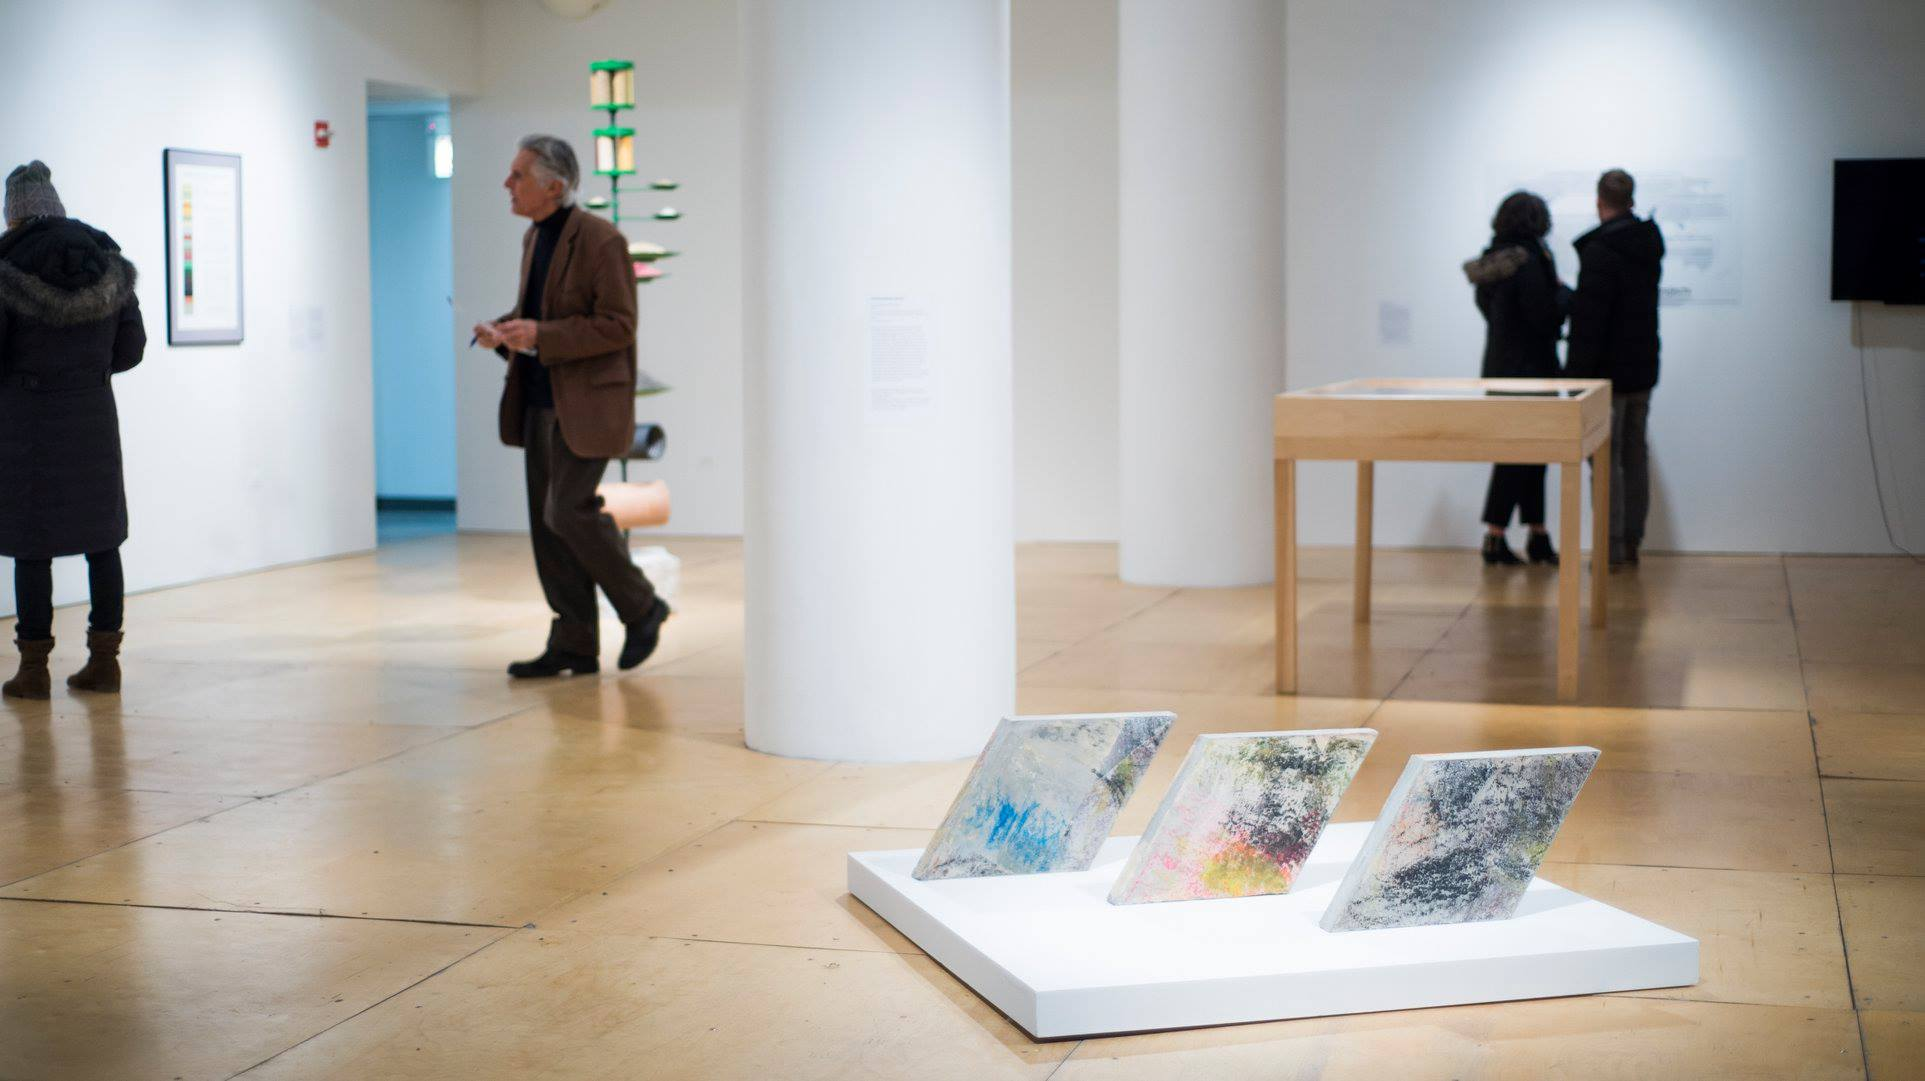 Installation photograph of  Scenography of Friendship  cast concrete, collaborative oil pastel rubbings with Mehmet, Fatma, Eyüp, Sudenaz, Yağmur, and Yaren. Photo courtesy of Gallery 400.